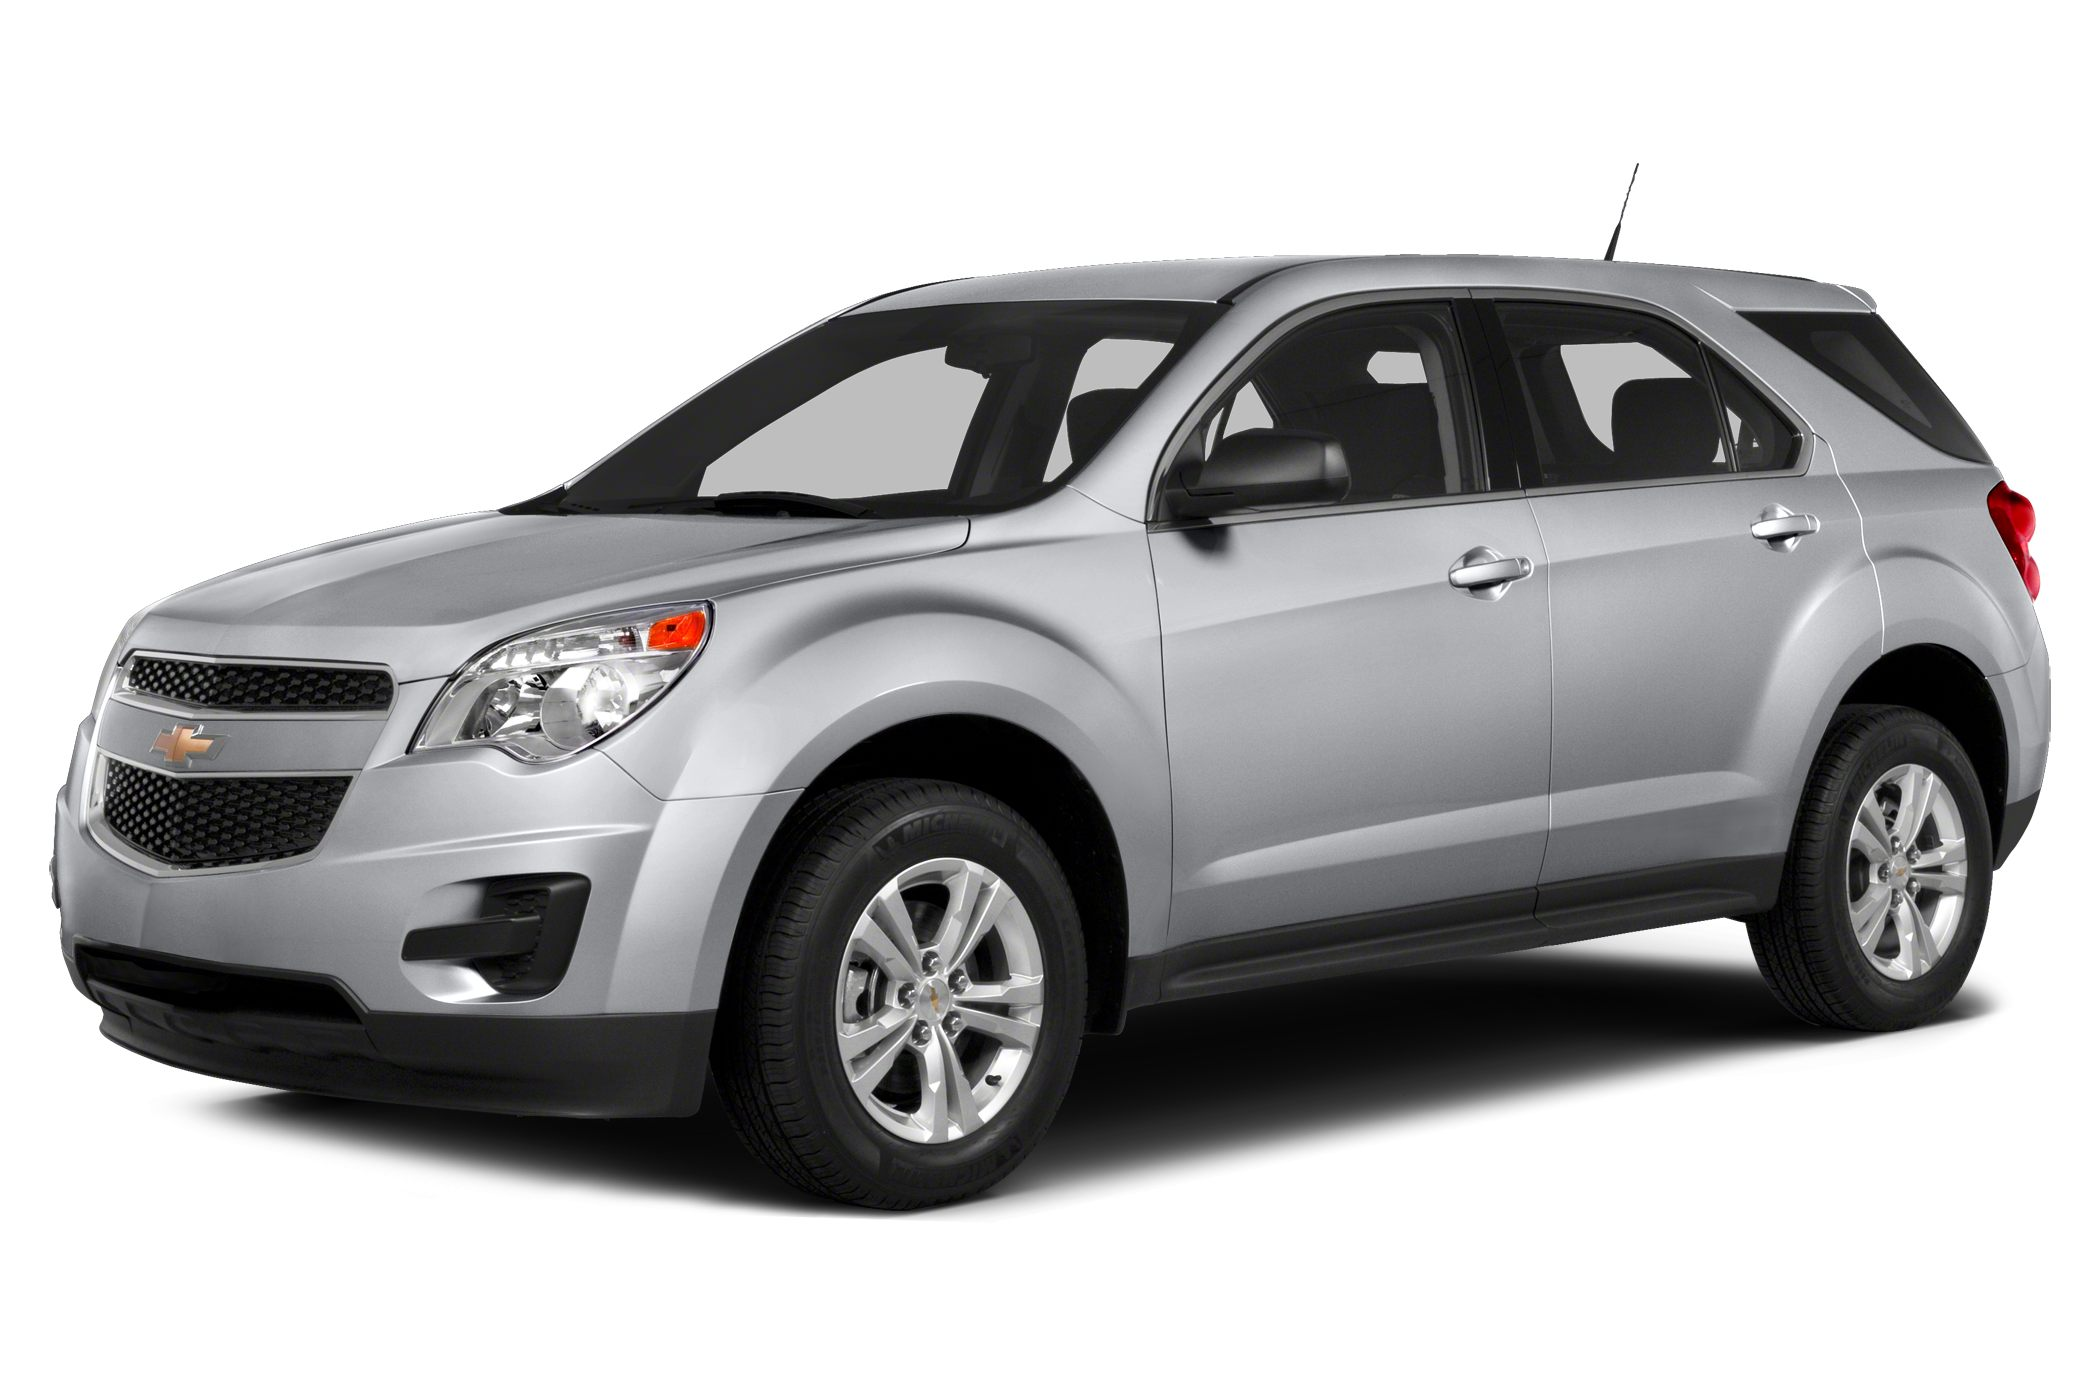 2013 Chevrolet Equinox LS GREAT CONDITION NO ACCIDENT HISTORY ON CARFAX ONE-OWNER